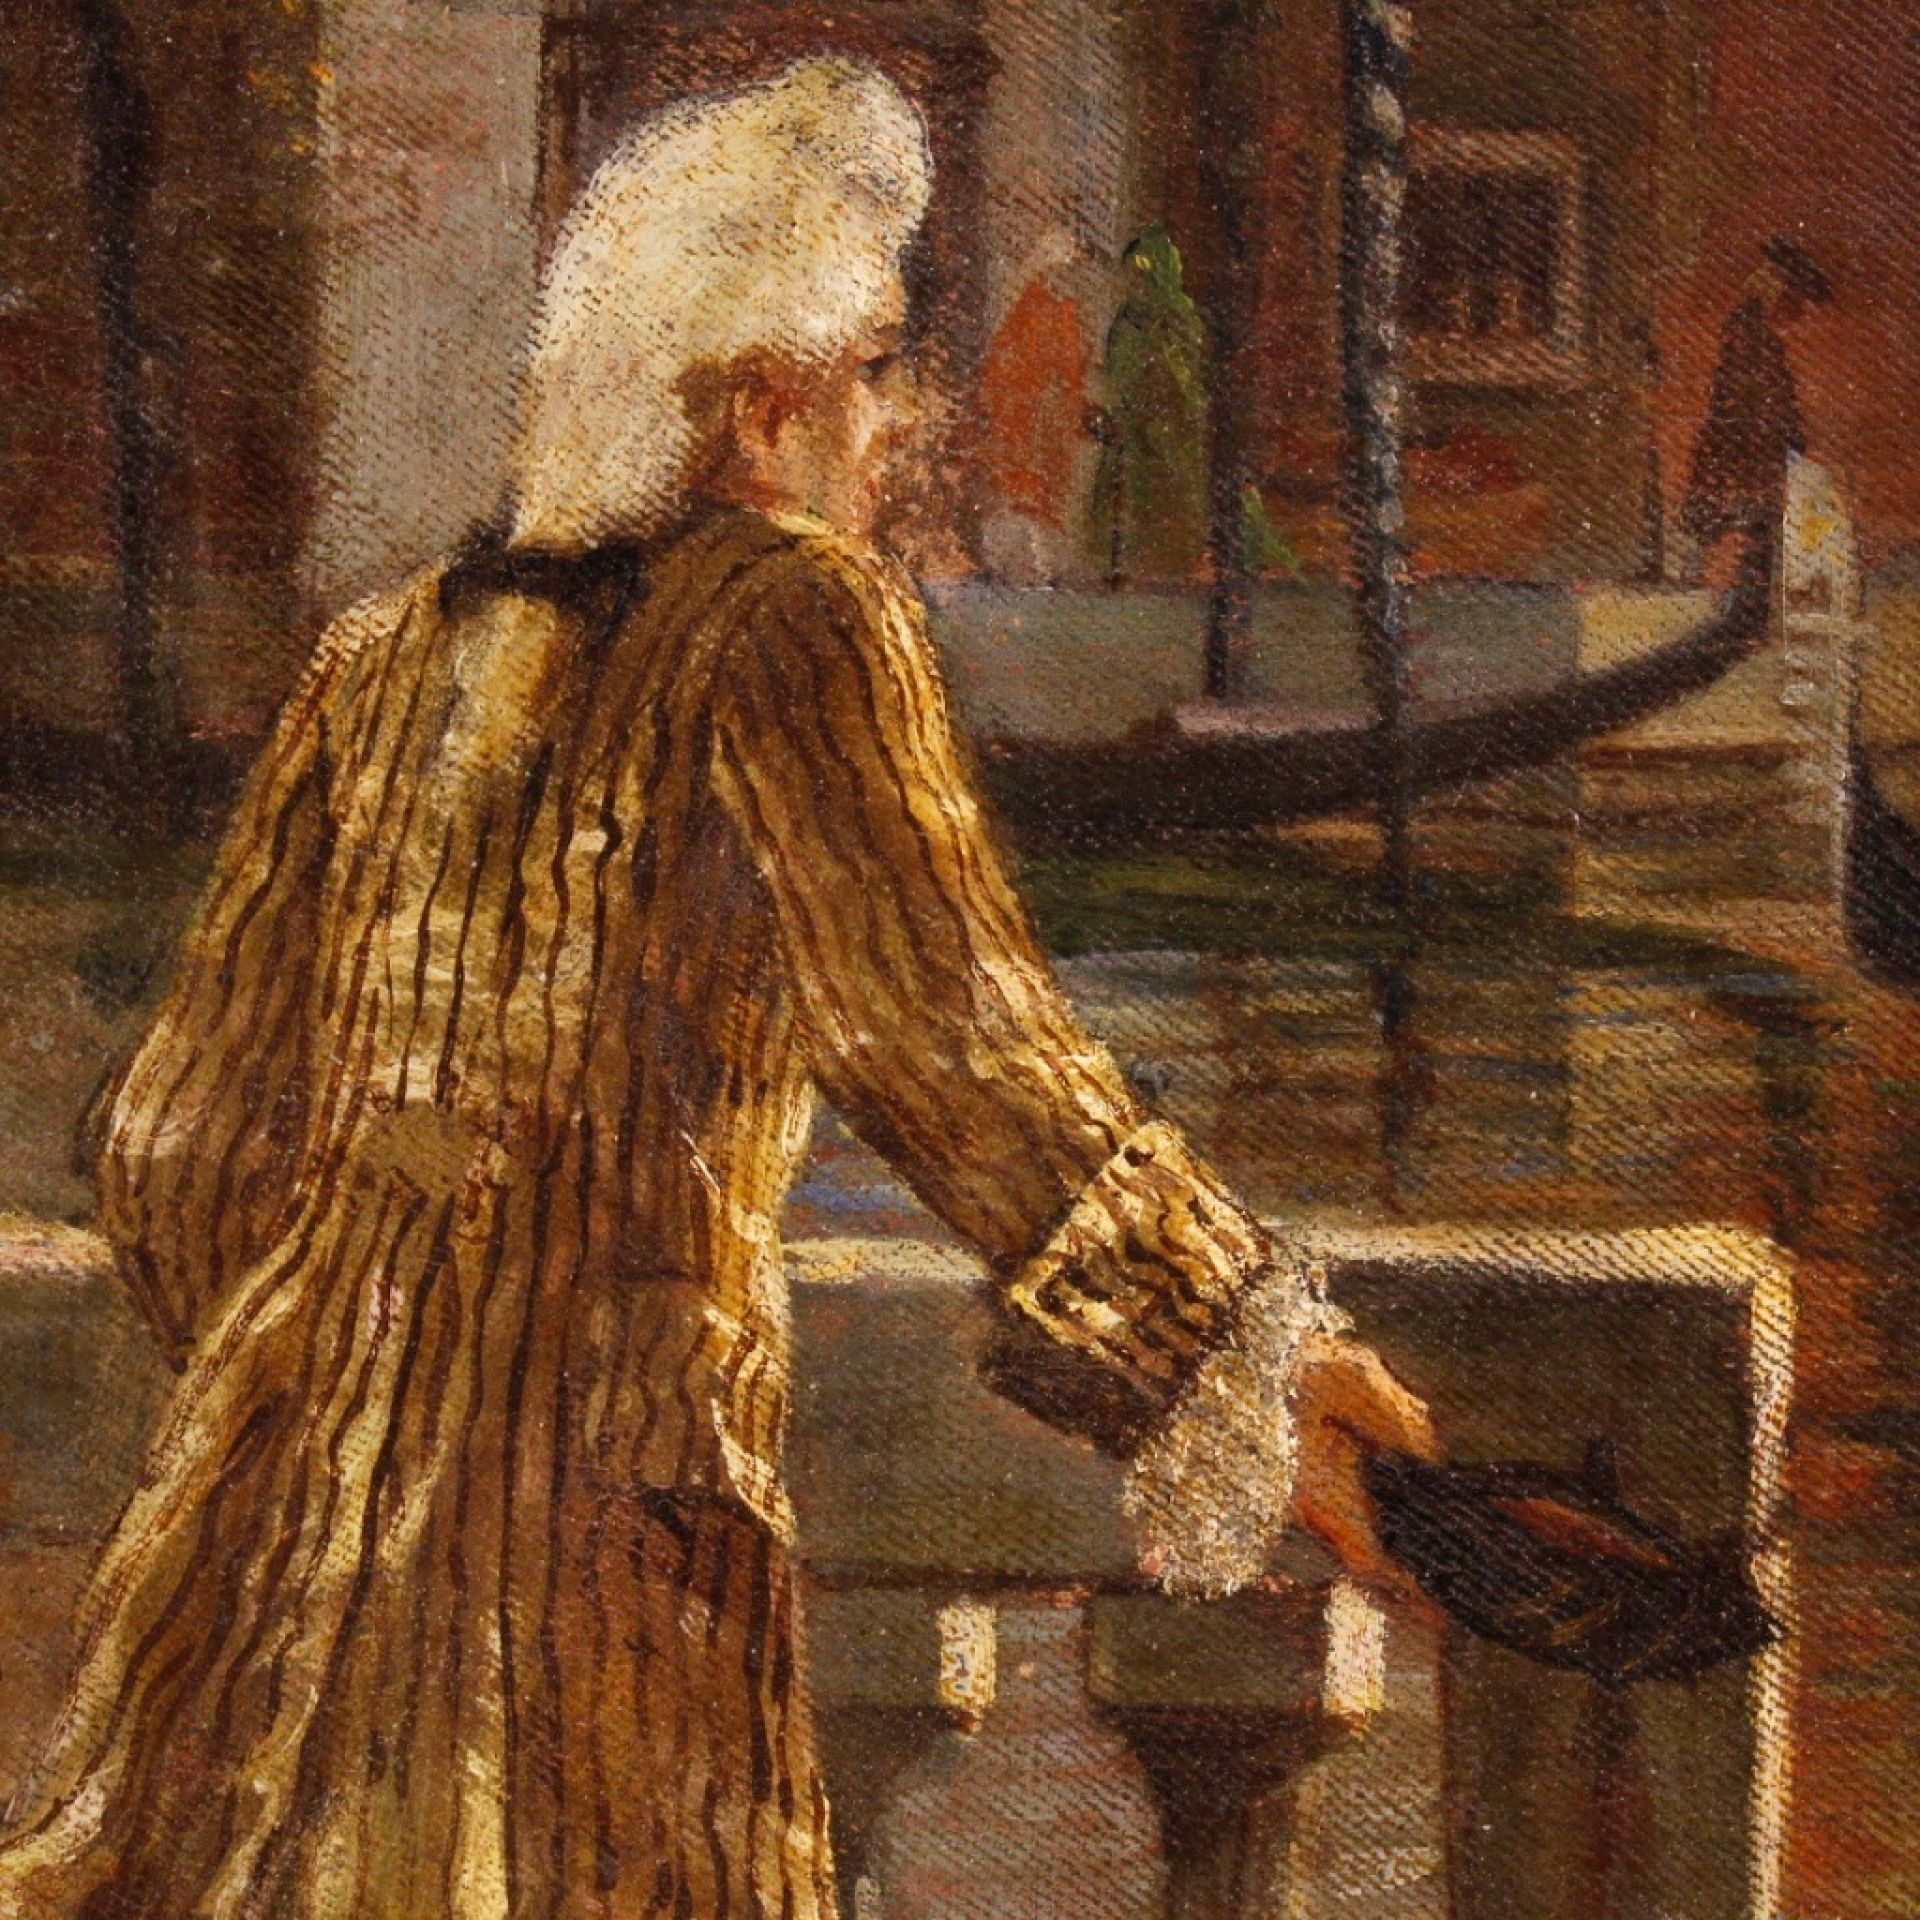 20th Century Oil On Canvas Italian Venetian Canal View With Characters Painting,